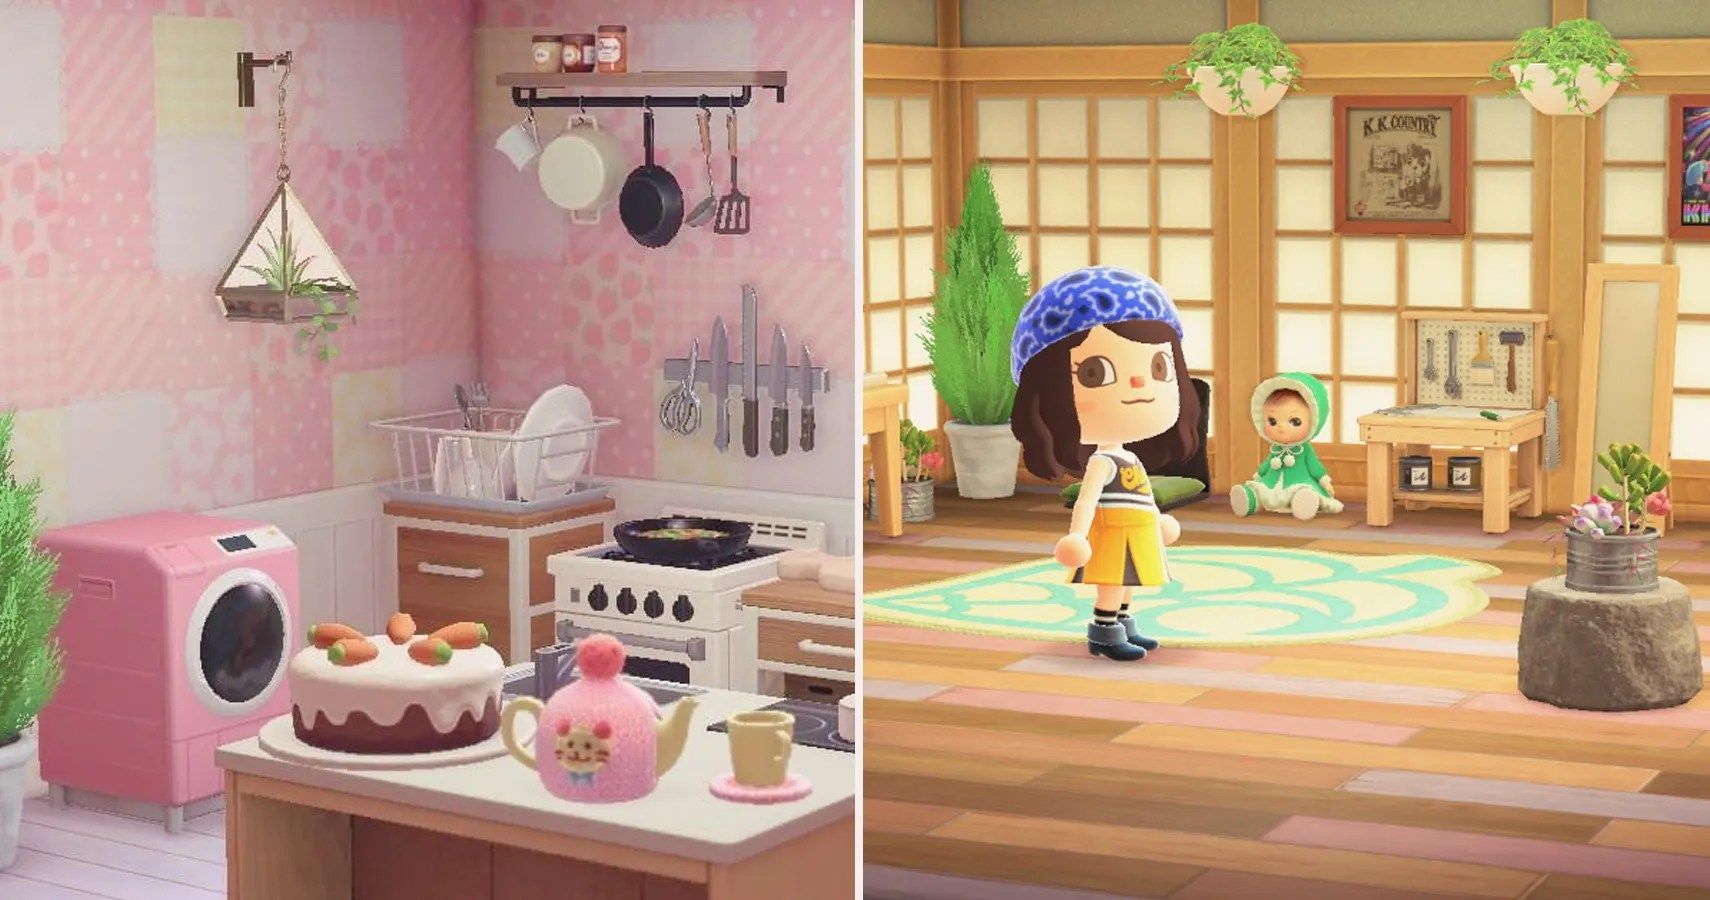 Hypebeast Bedroom Wallpaper | www.resnooze.com on Animal Crossing Room Ideas New Horizons  id=75038